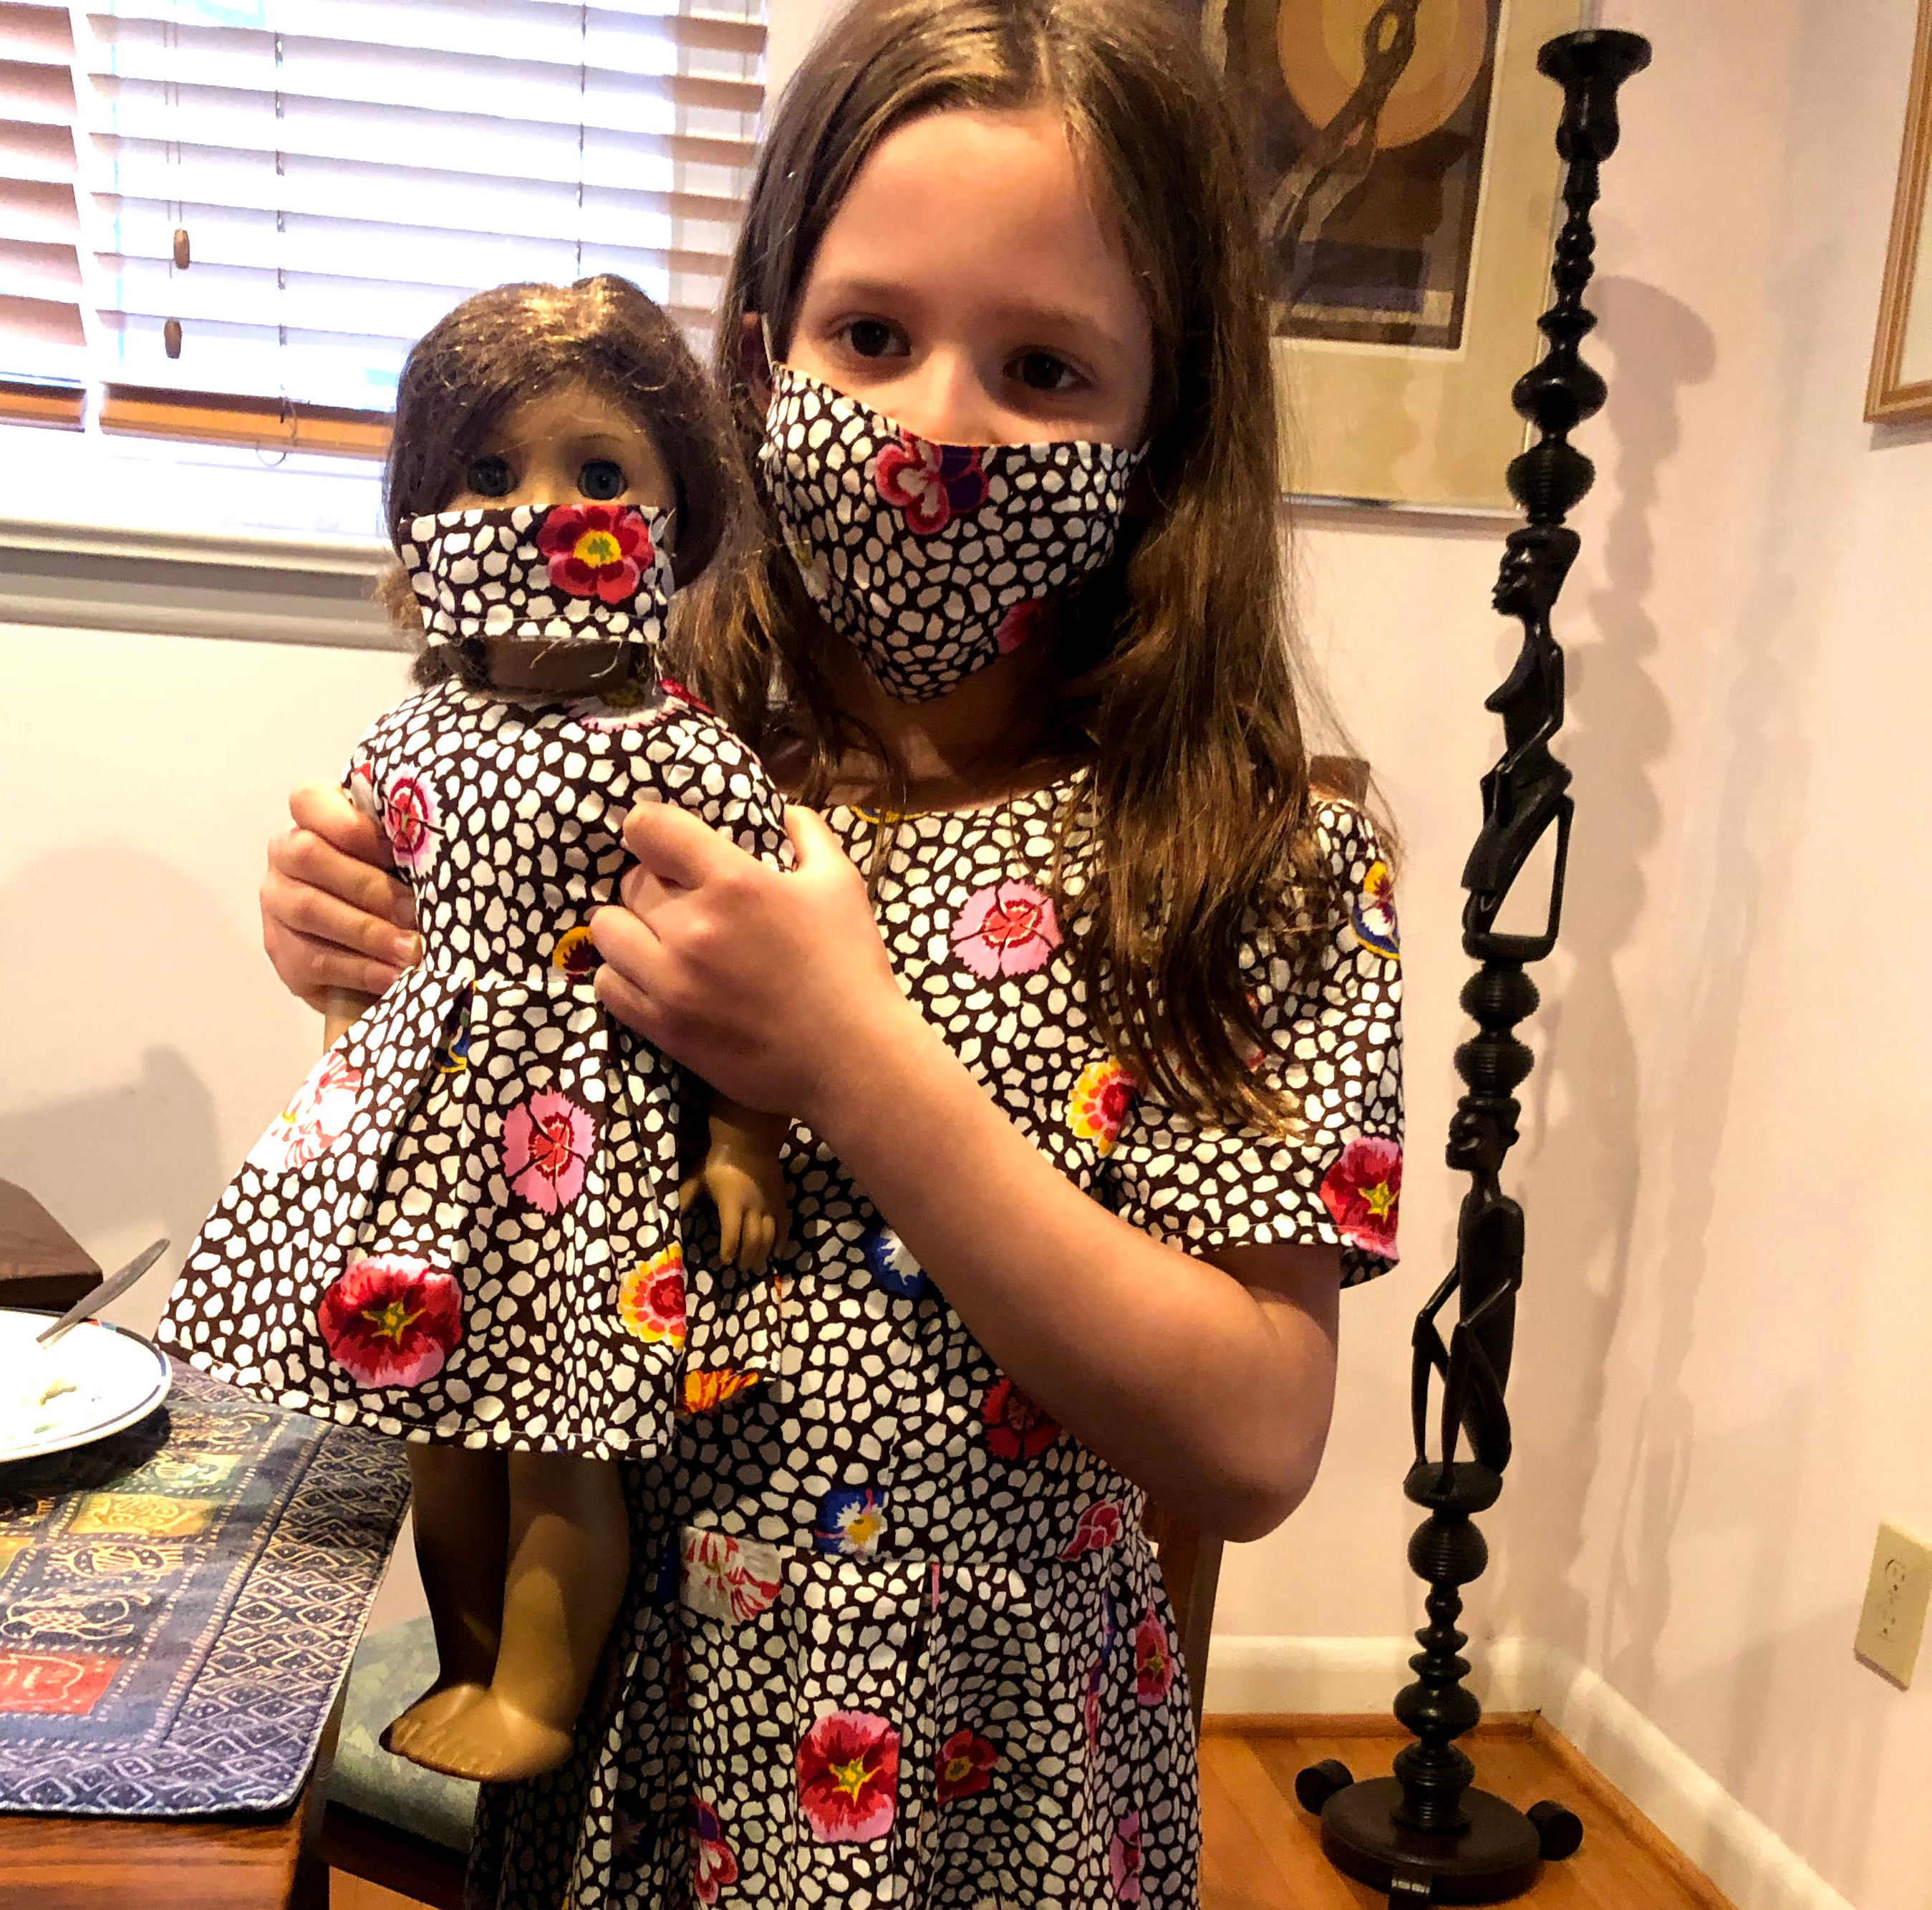 Gali Feinberg and her doll in matching dresses made by her grandmother (Courtesy photo)